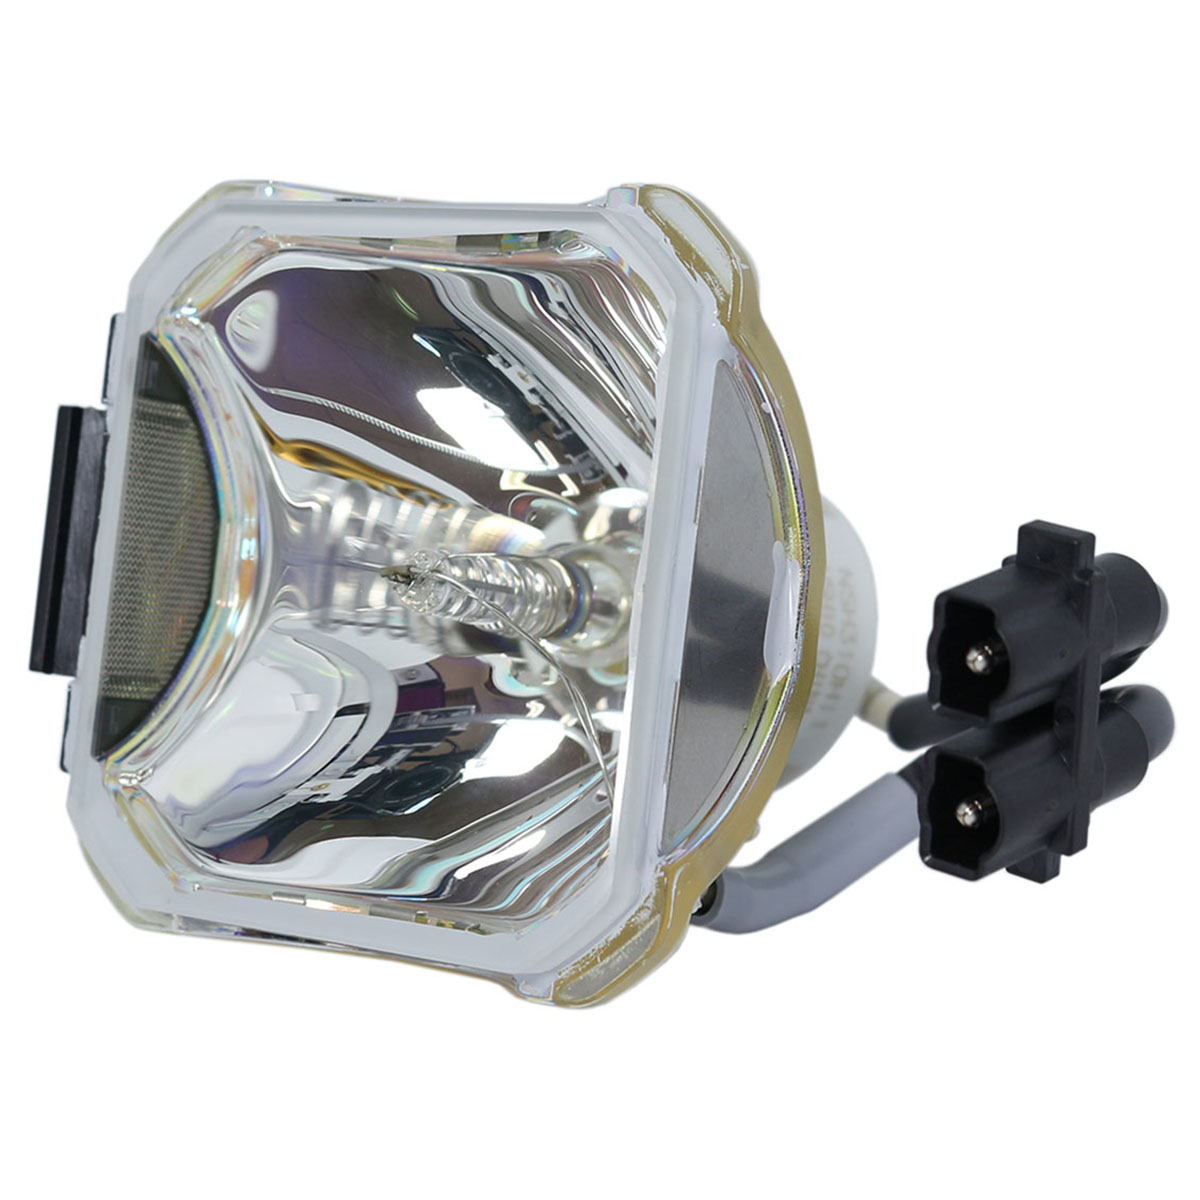 Original Ushio Projector Lamp Replacement for Ask Proxima C460 Bulb Only